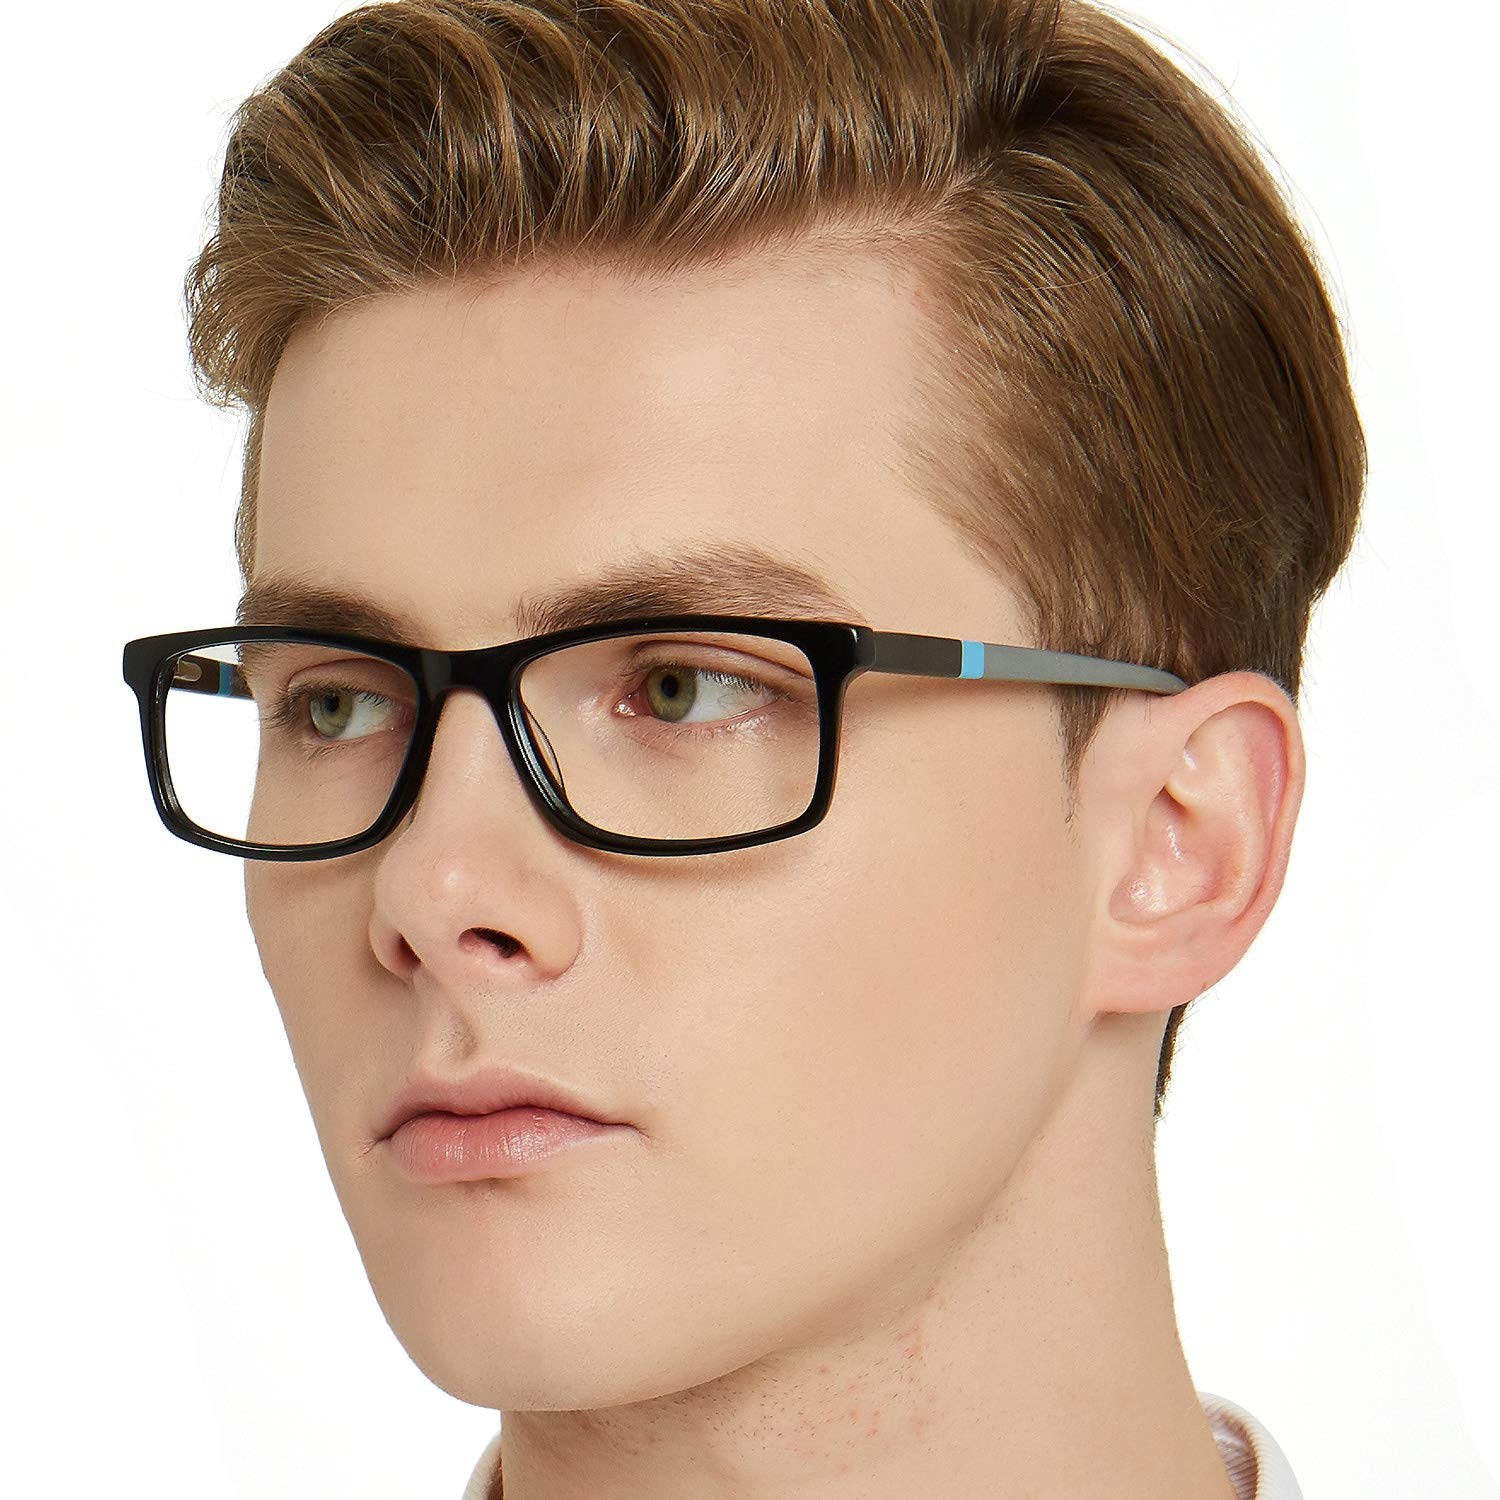 OCCI CHIARI VINTAGE Designer Style Rectangle Frame Clear Lens Eyeglasses (brown) For Women and Men